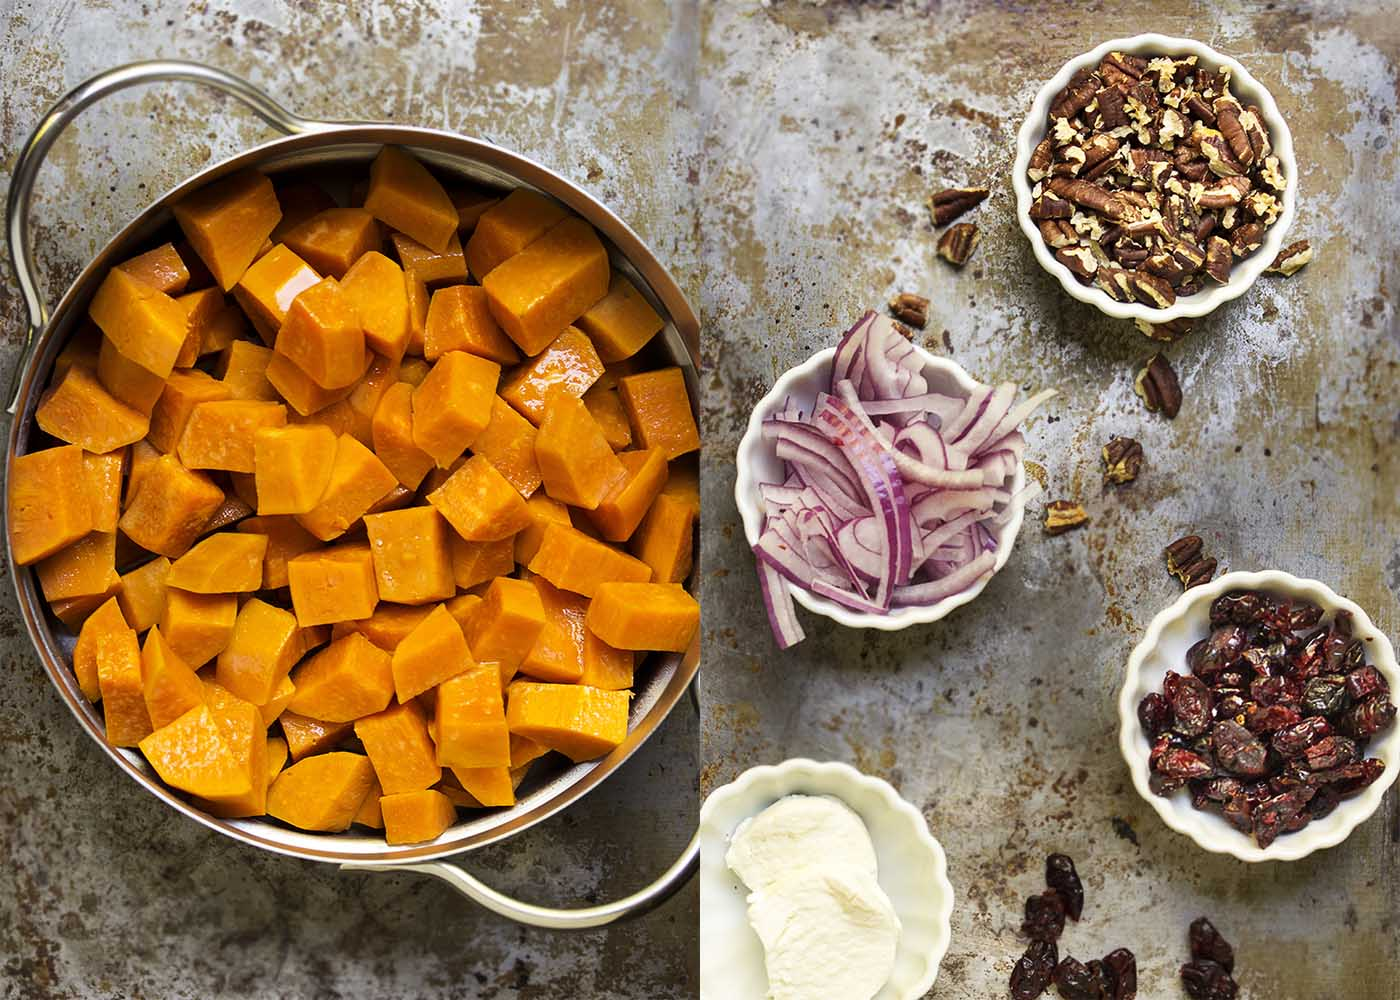 Step by step photos on how to make cold sweet potato salad.